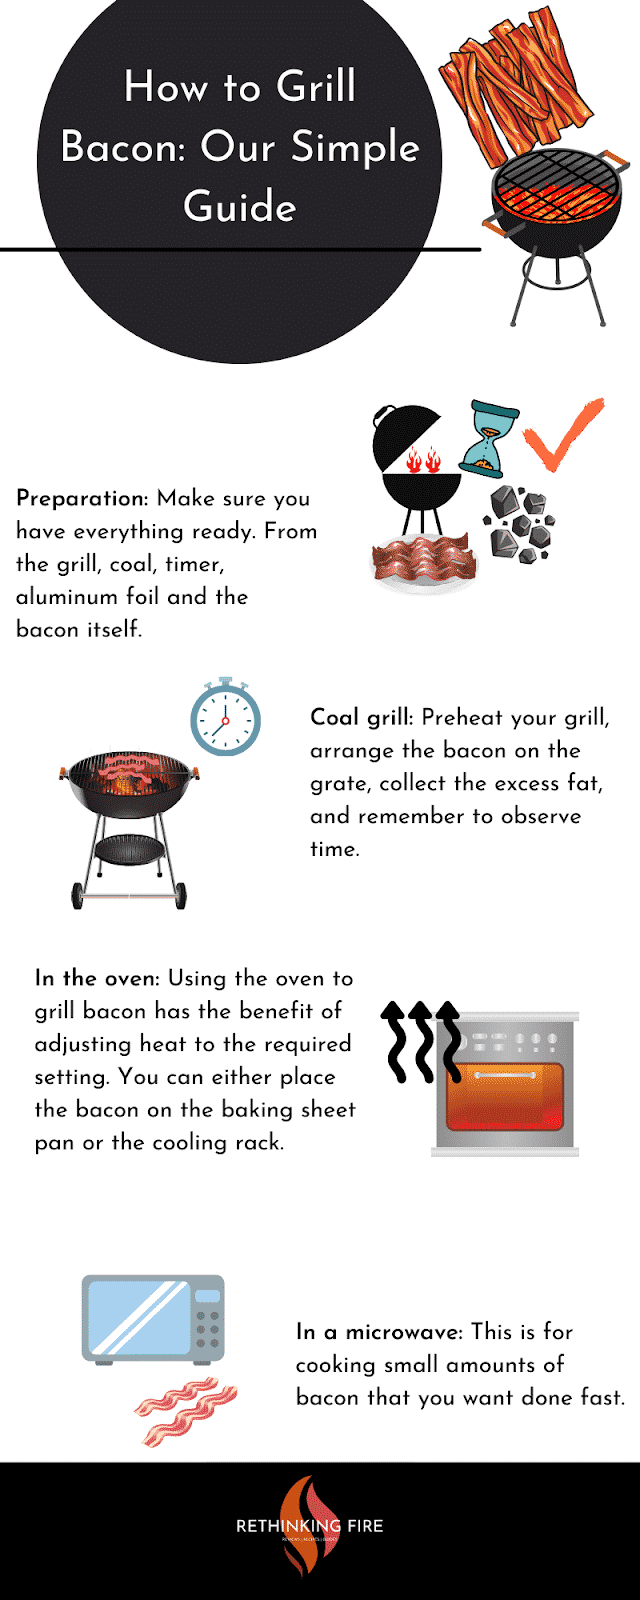 How to Grill Bacon infographic